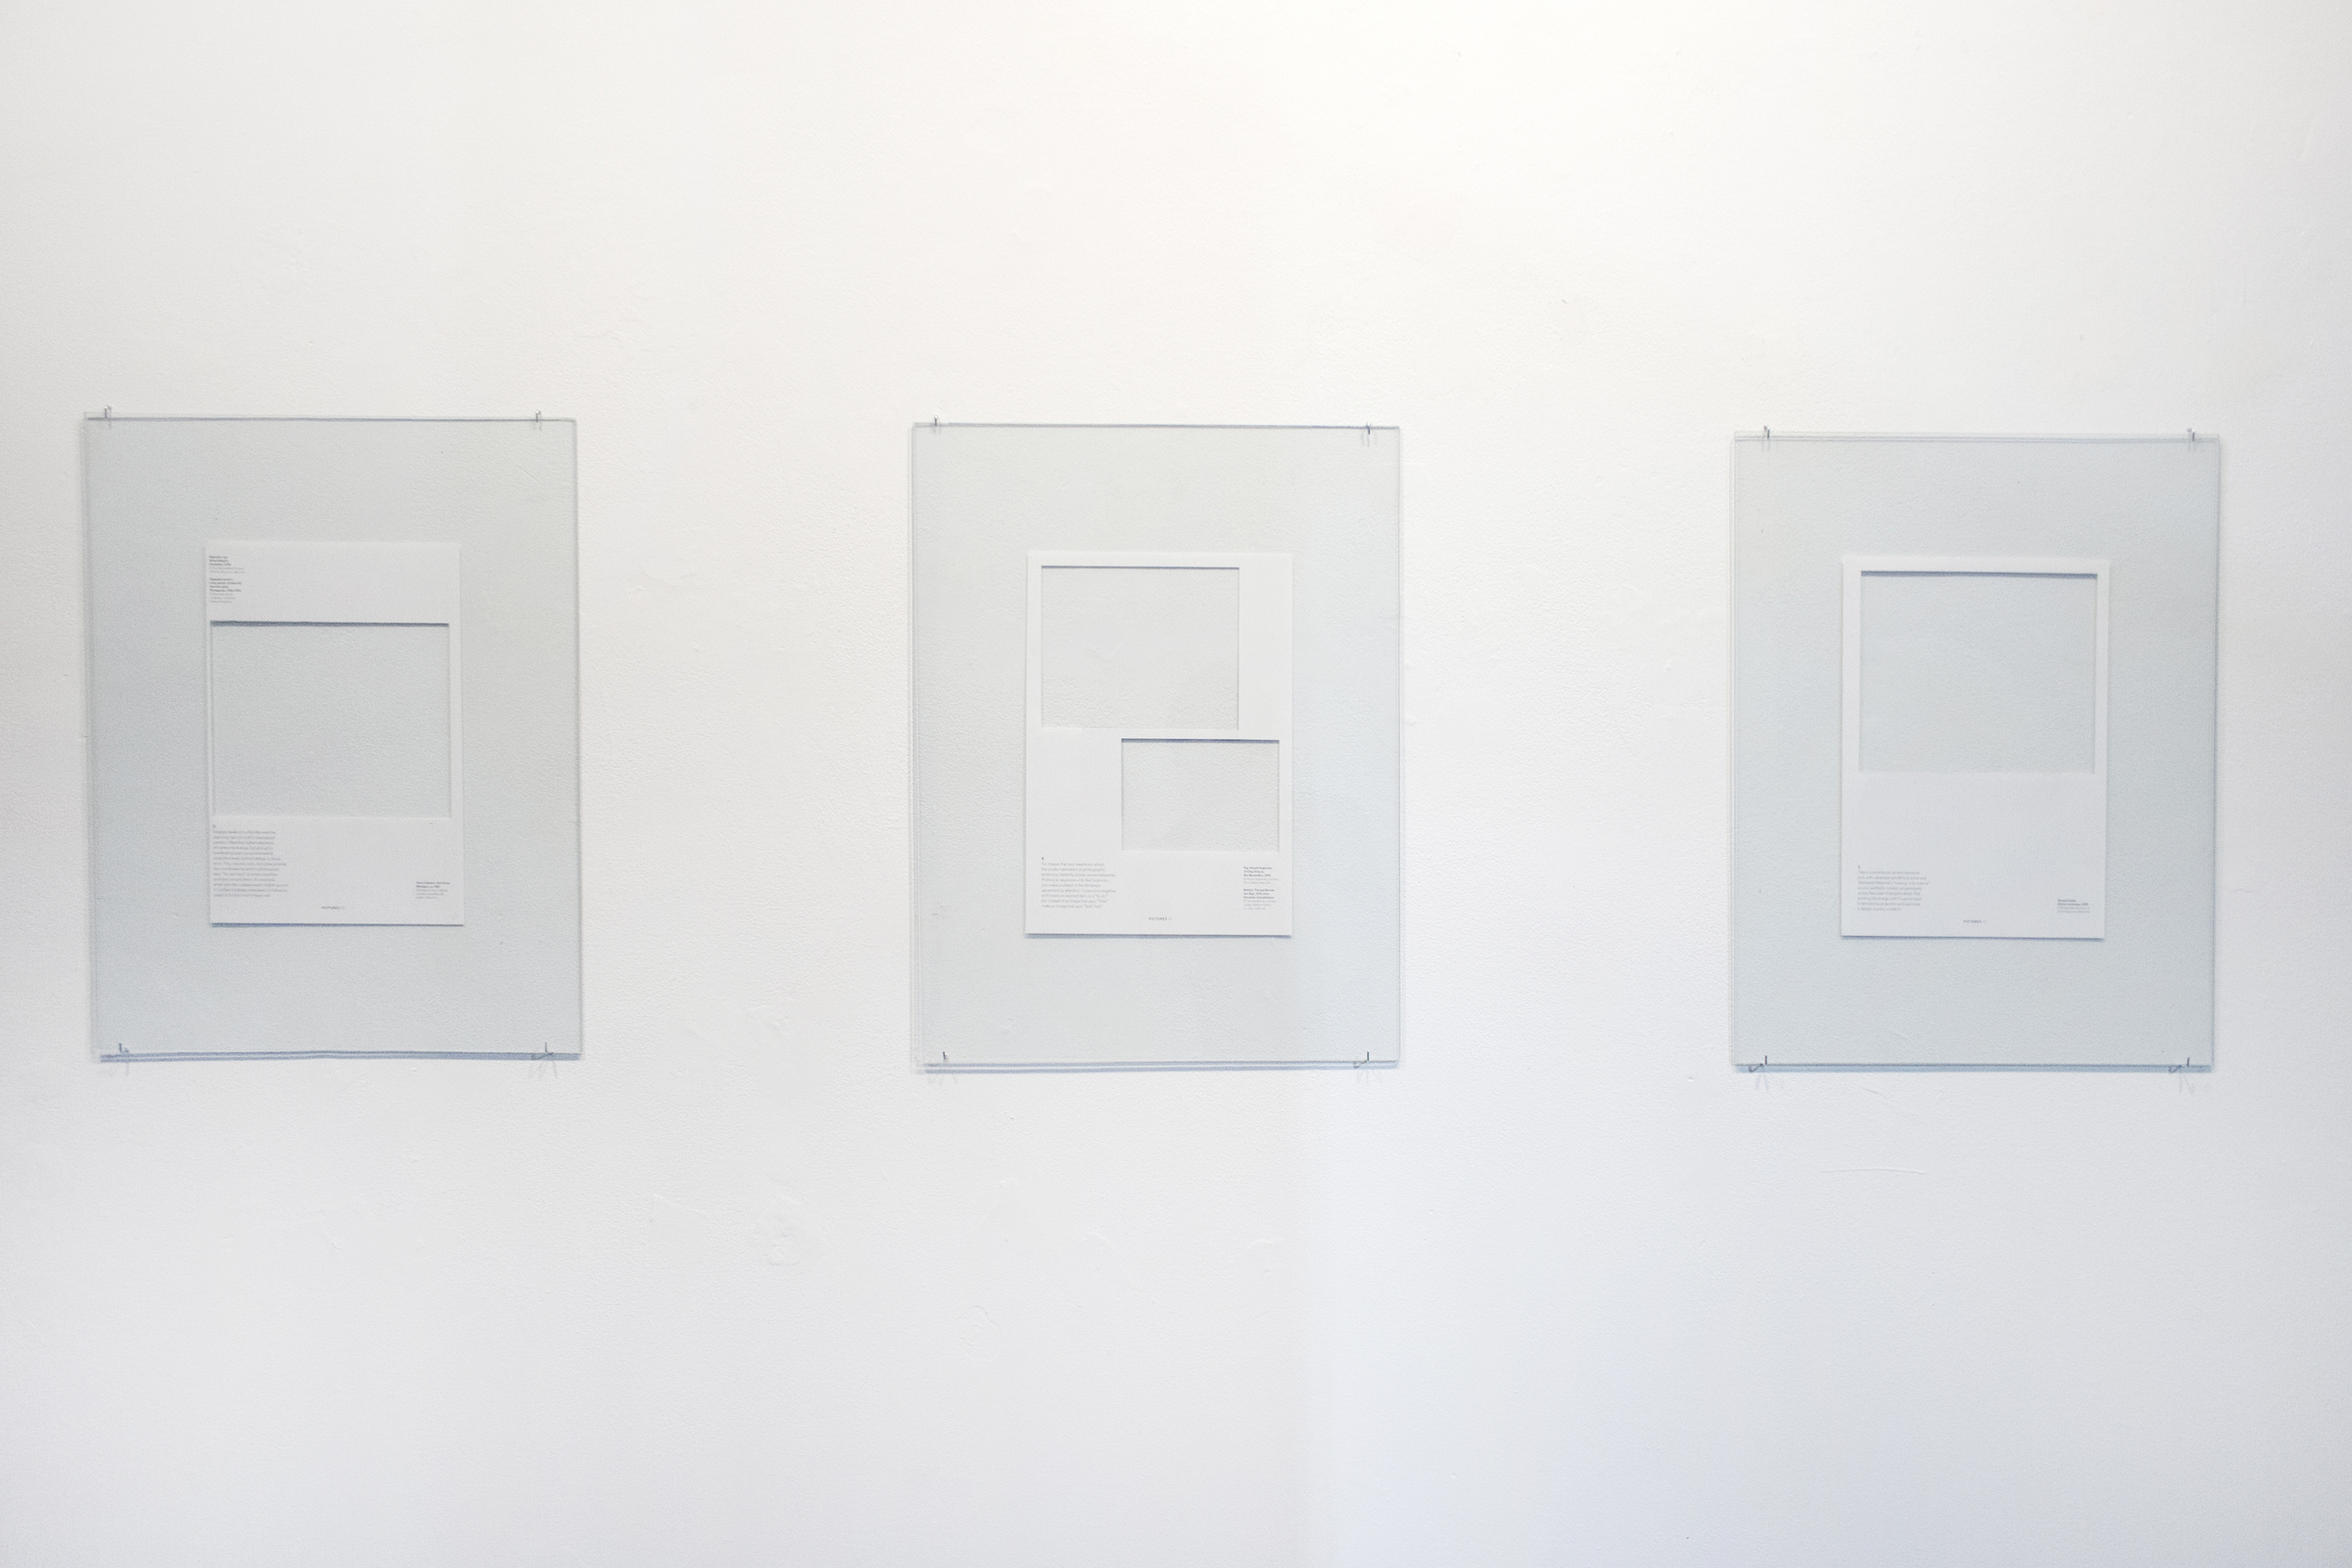 Some Guidelines To Making Photographs About Nothing, 2013